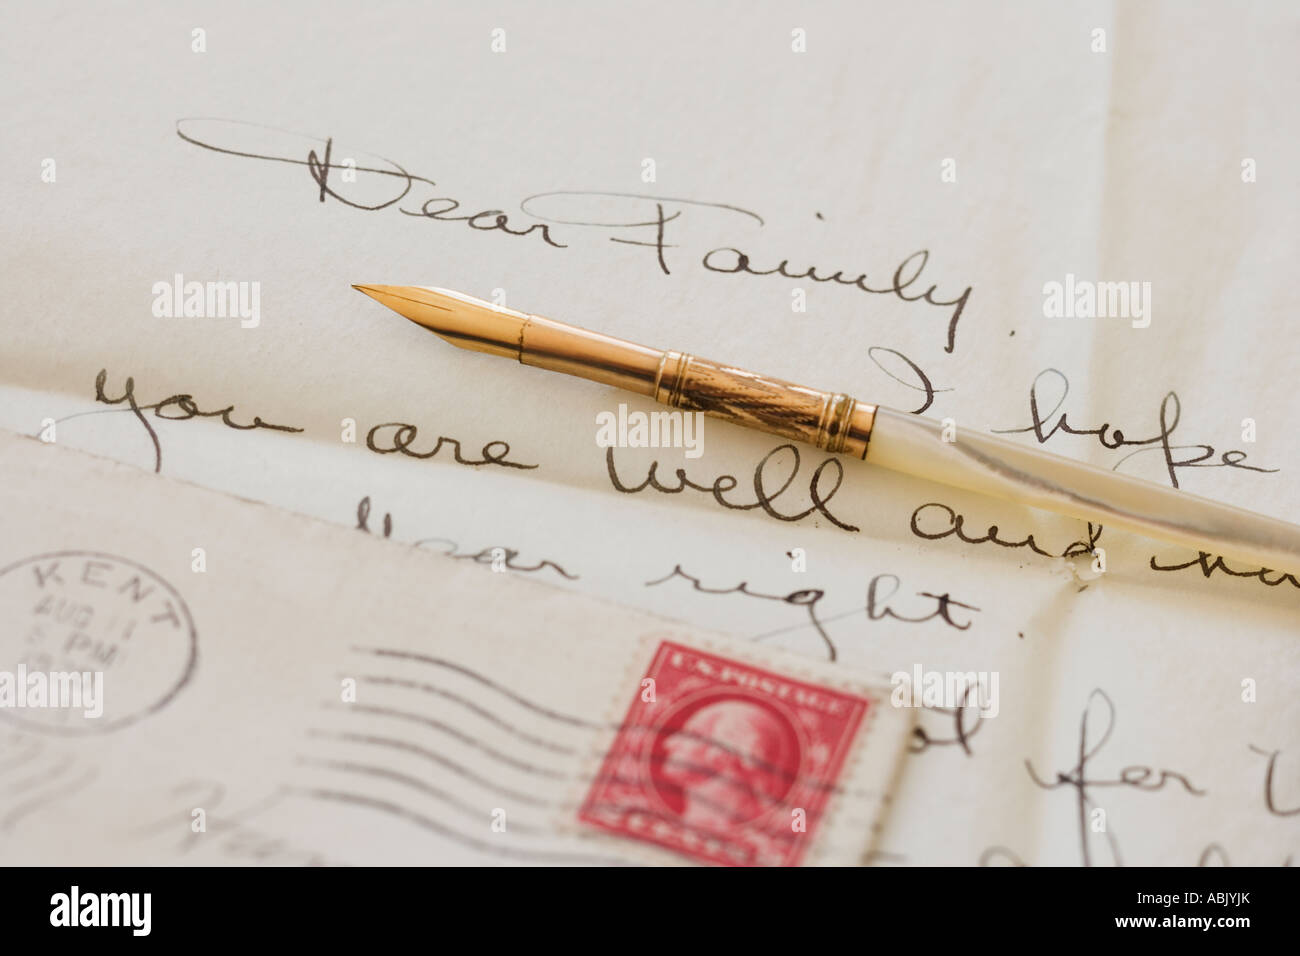 Quill pen on old letter - Stock Image